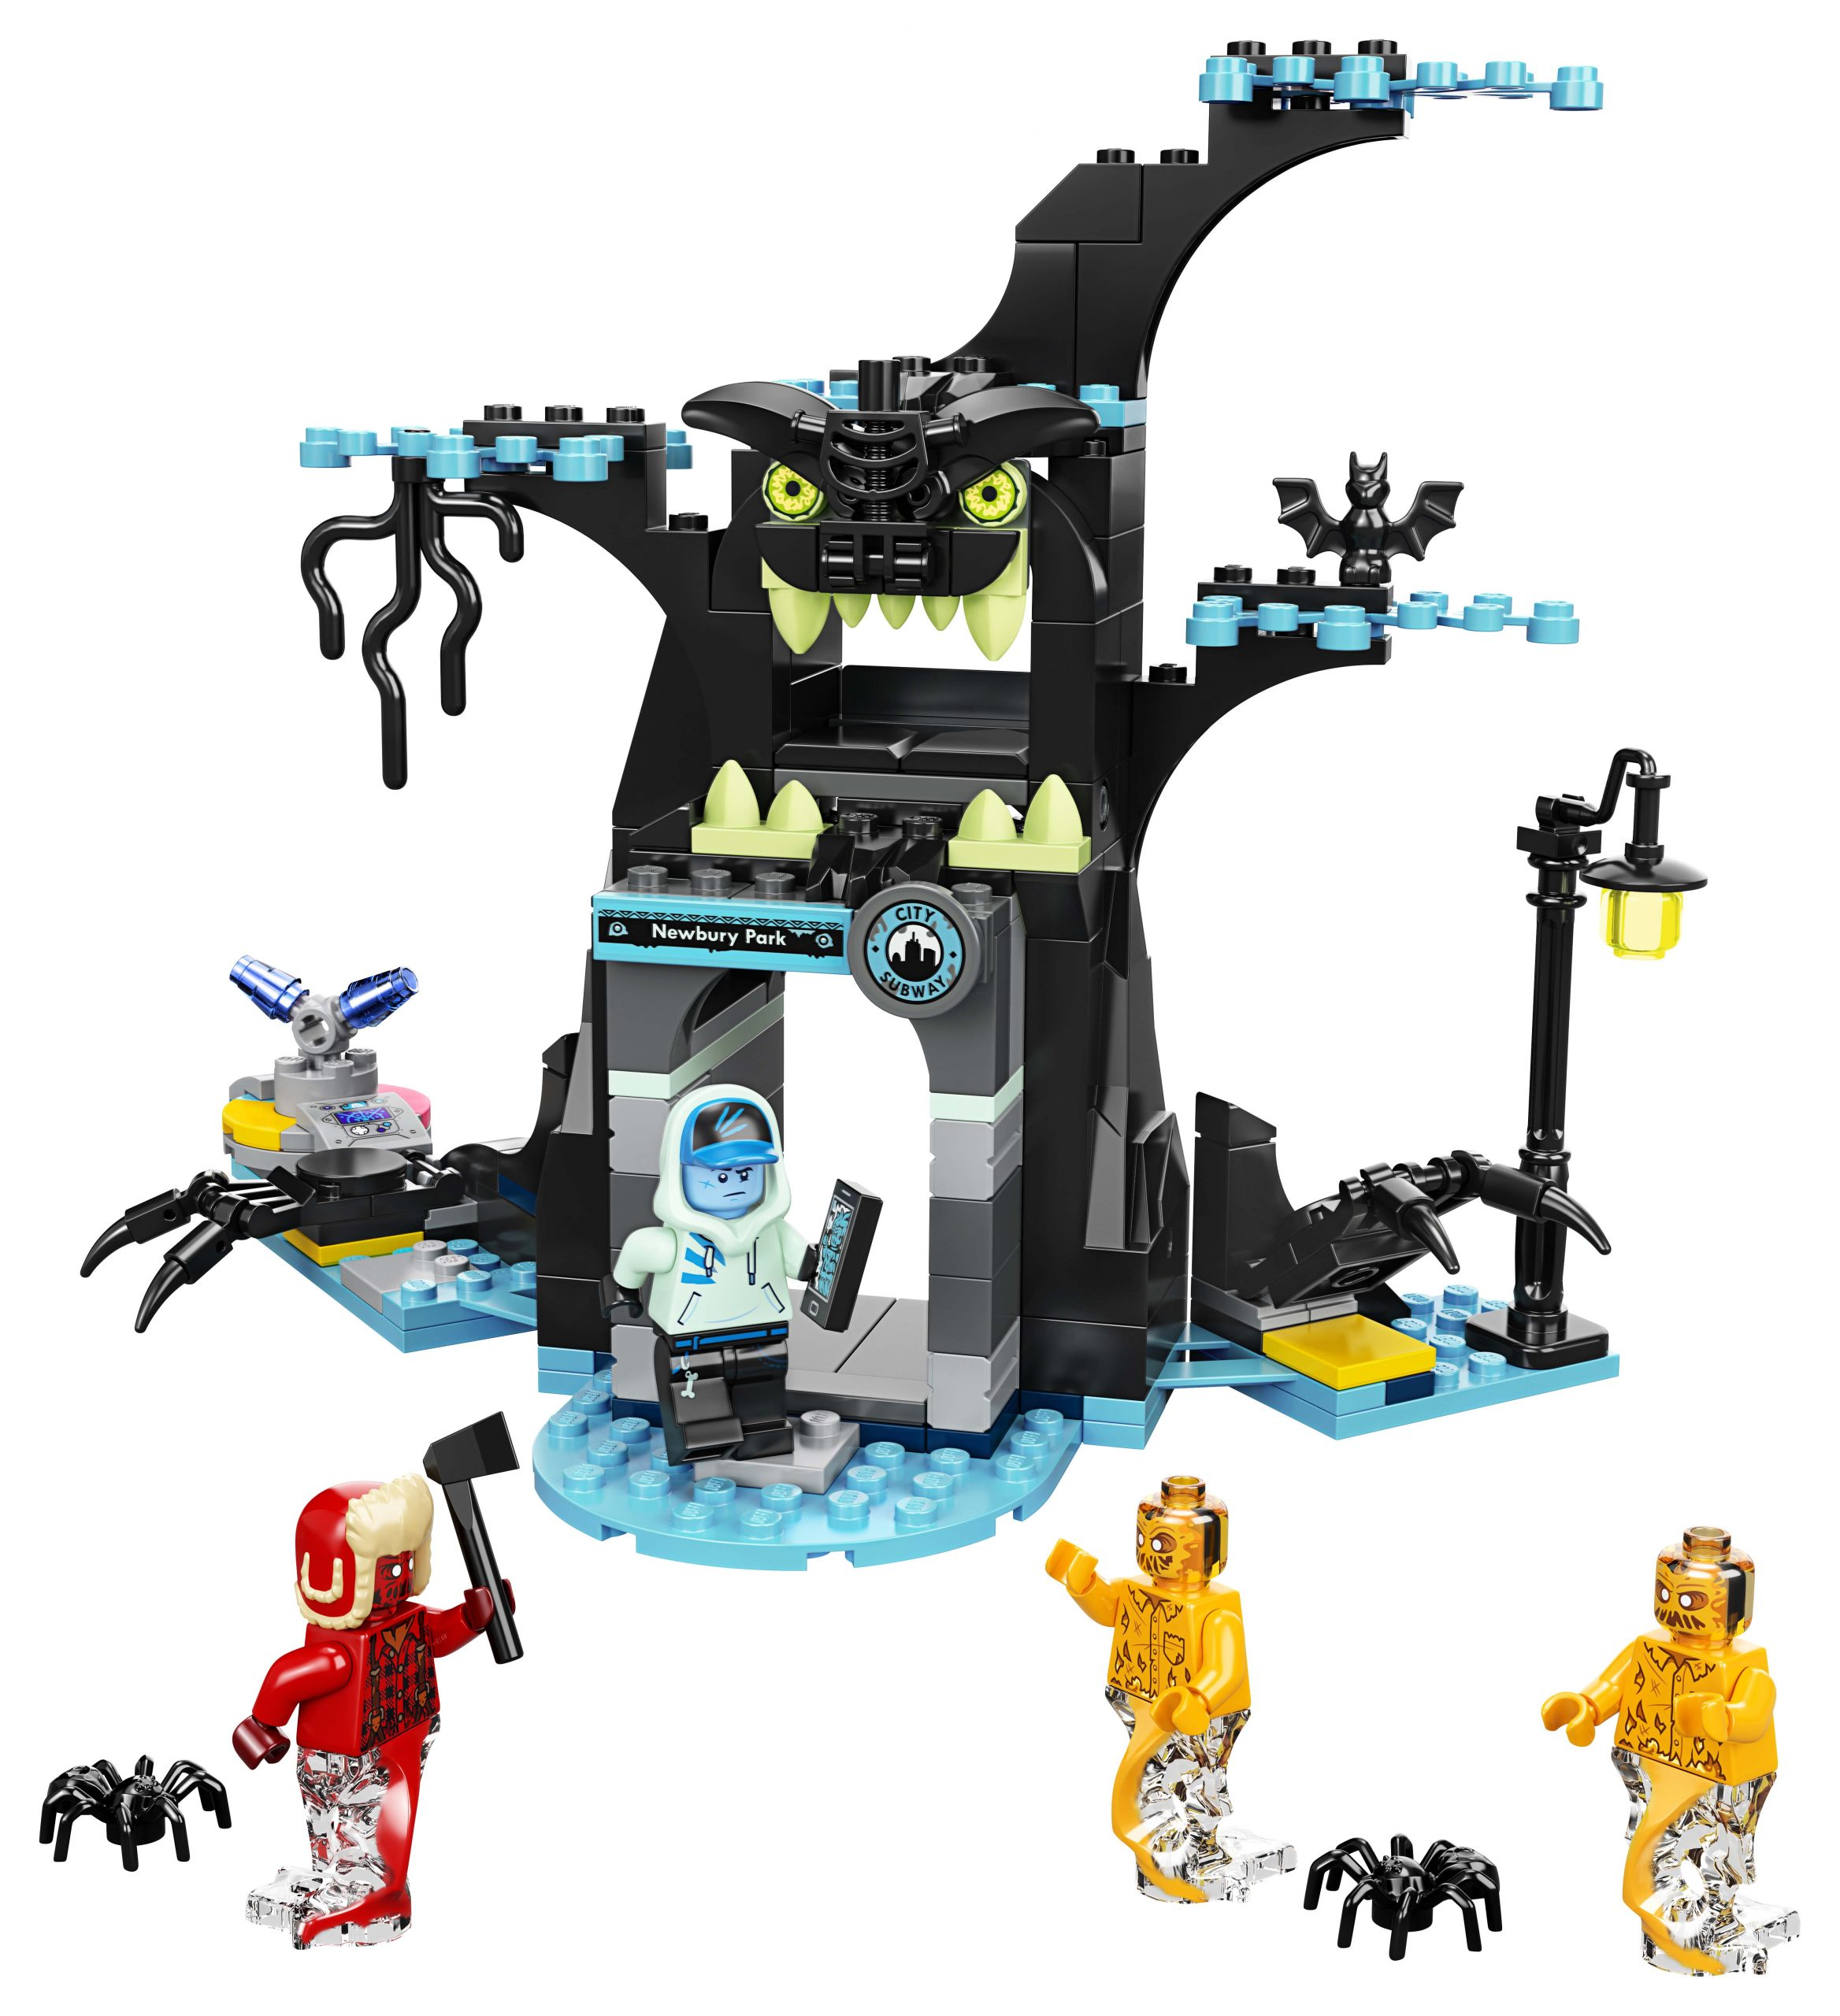 Lego Hidden Side 2020 Sets Officially Revealed The Brick Fan